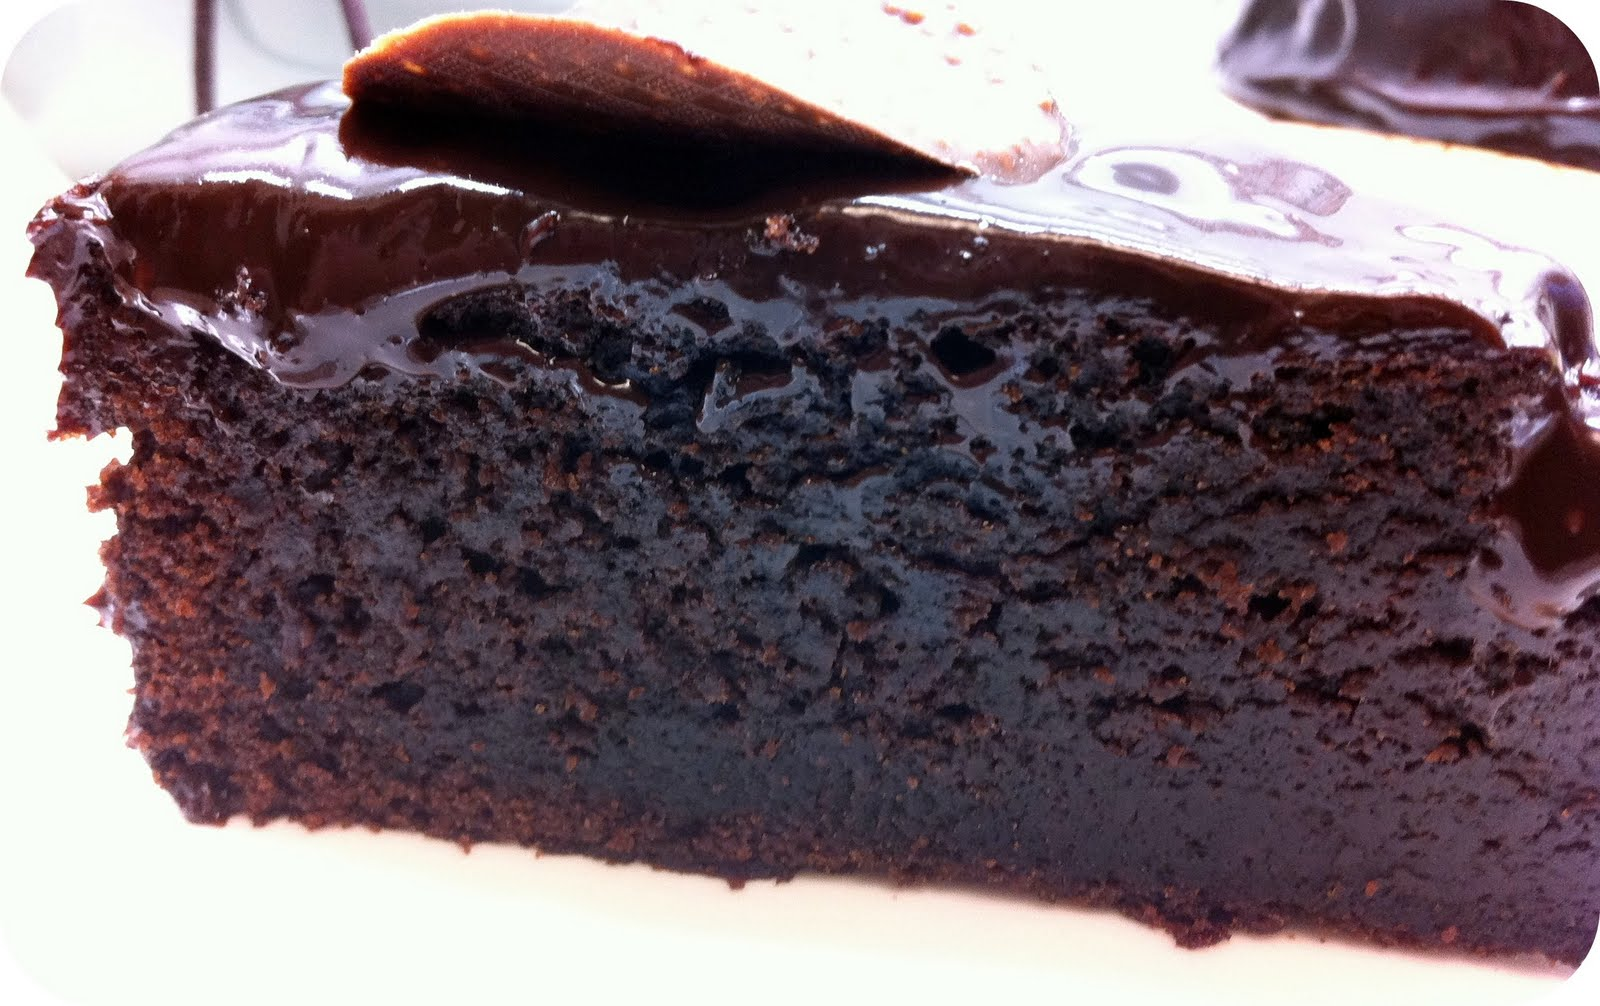 ... in Taiwan: Christelle's Chocolate Mayonnaise Cake with Ganache